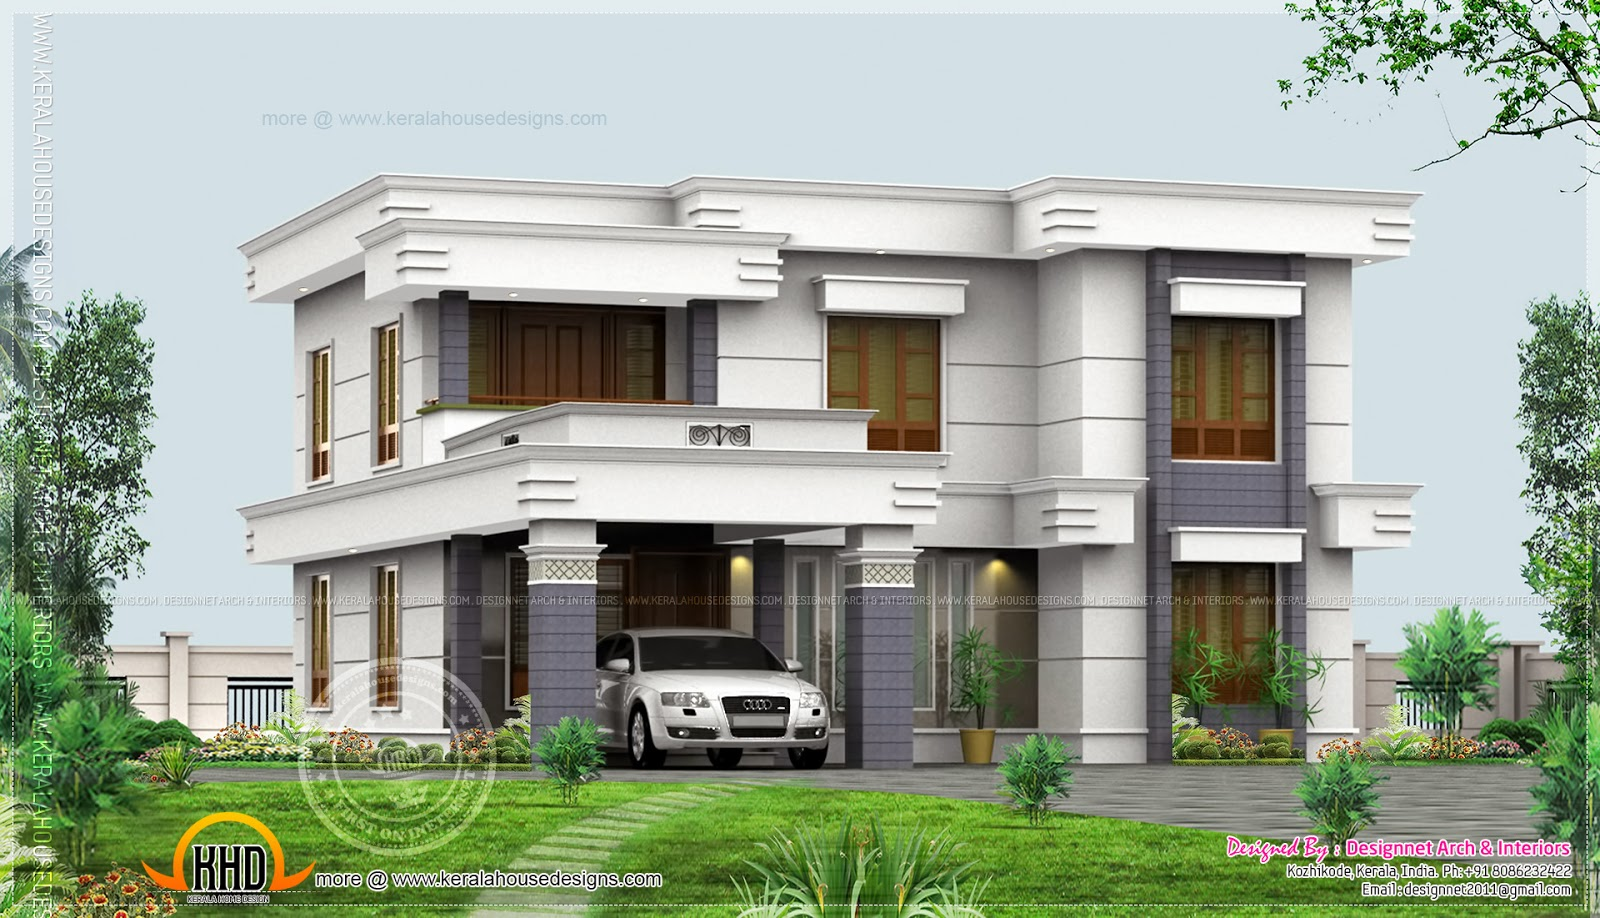 January 2014 kerala home design and floor plans - Flat roof home designs ...